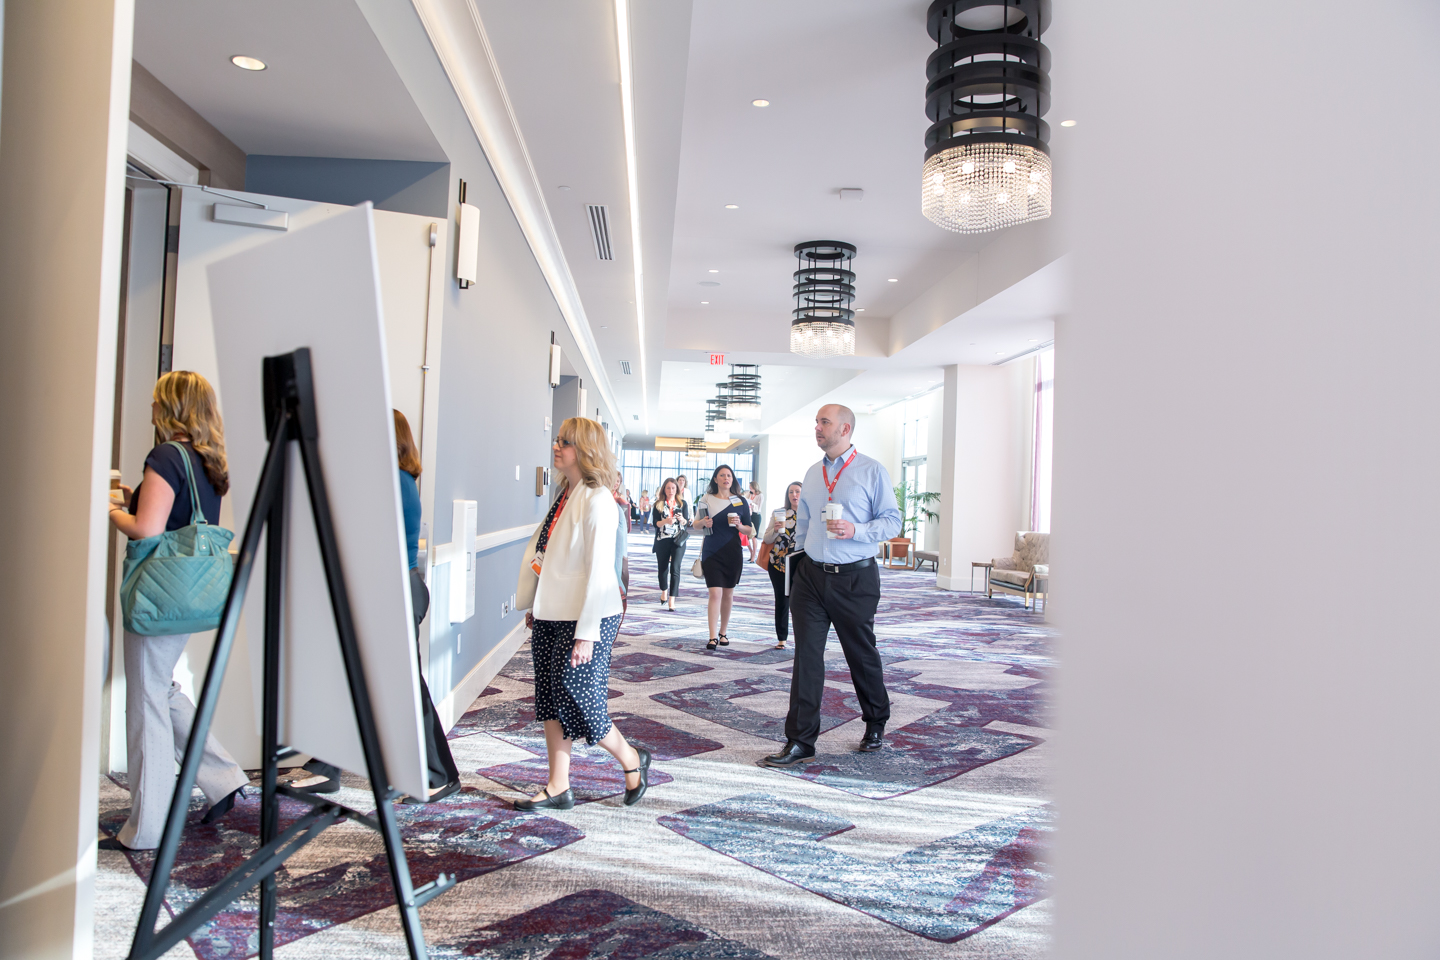 AAPPR-Conference-Expo-Professional-Event-Photography-Photographer-Orlando-entrance-lowes-sapphire-resort-universal-orlando-1.jpg